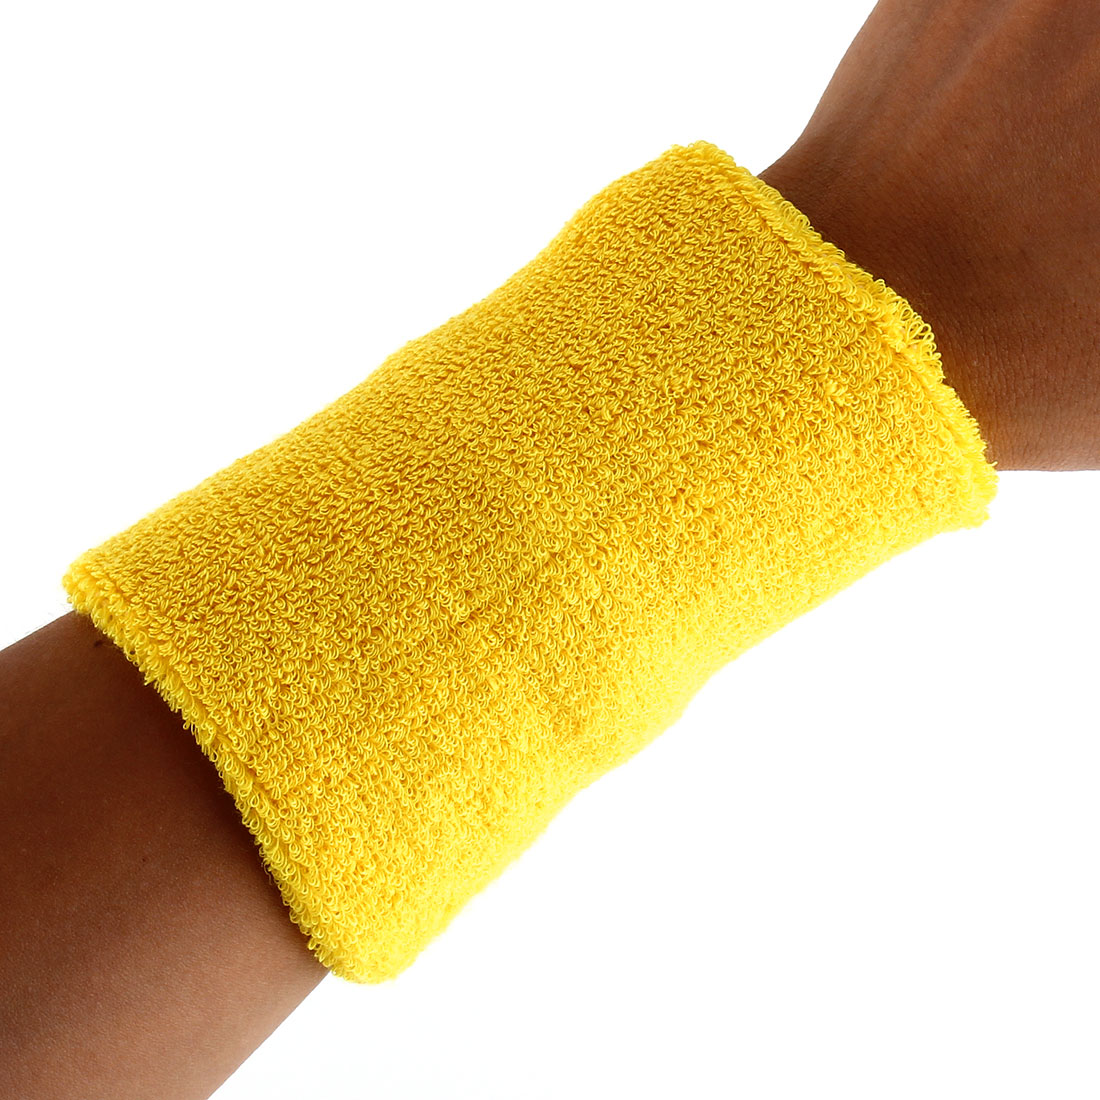 Exercises Football Gym Elastic Strap Hand Protector Sweatband Sport Wrist Yellow 2pcs